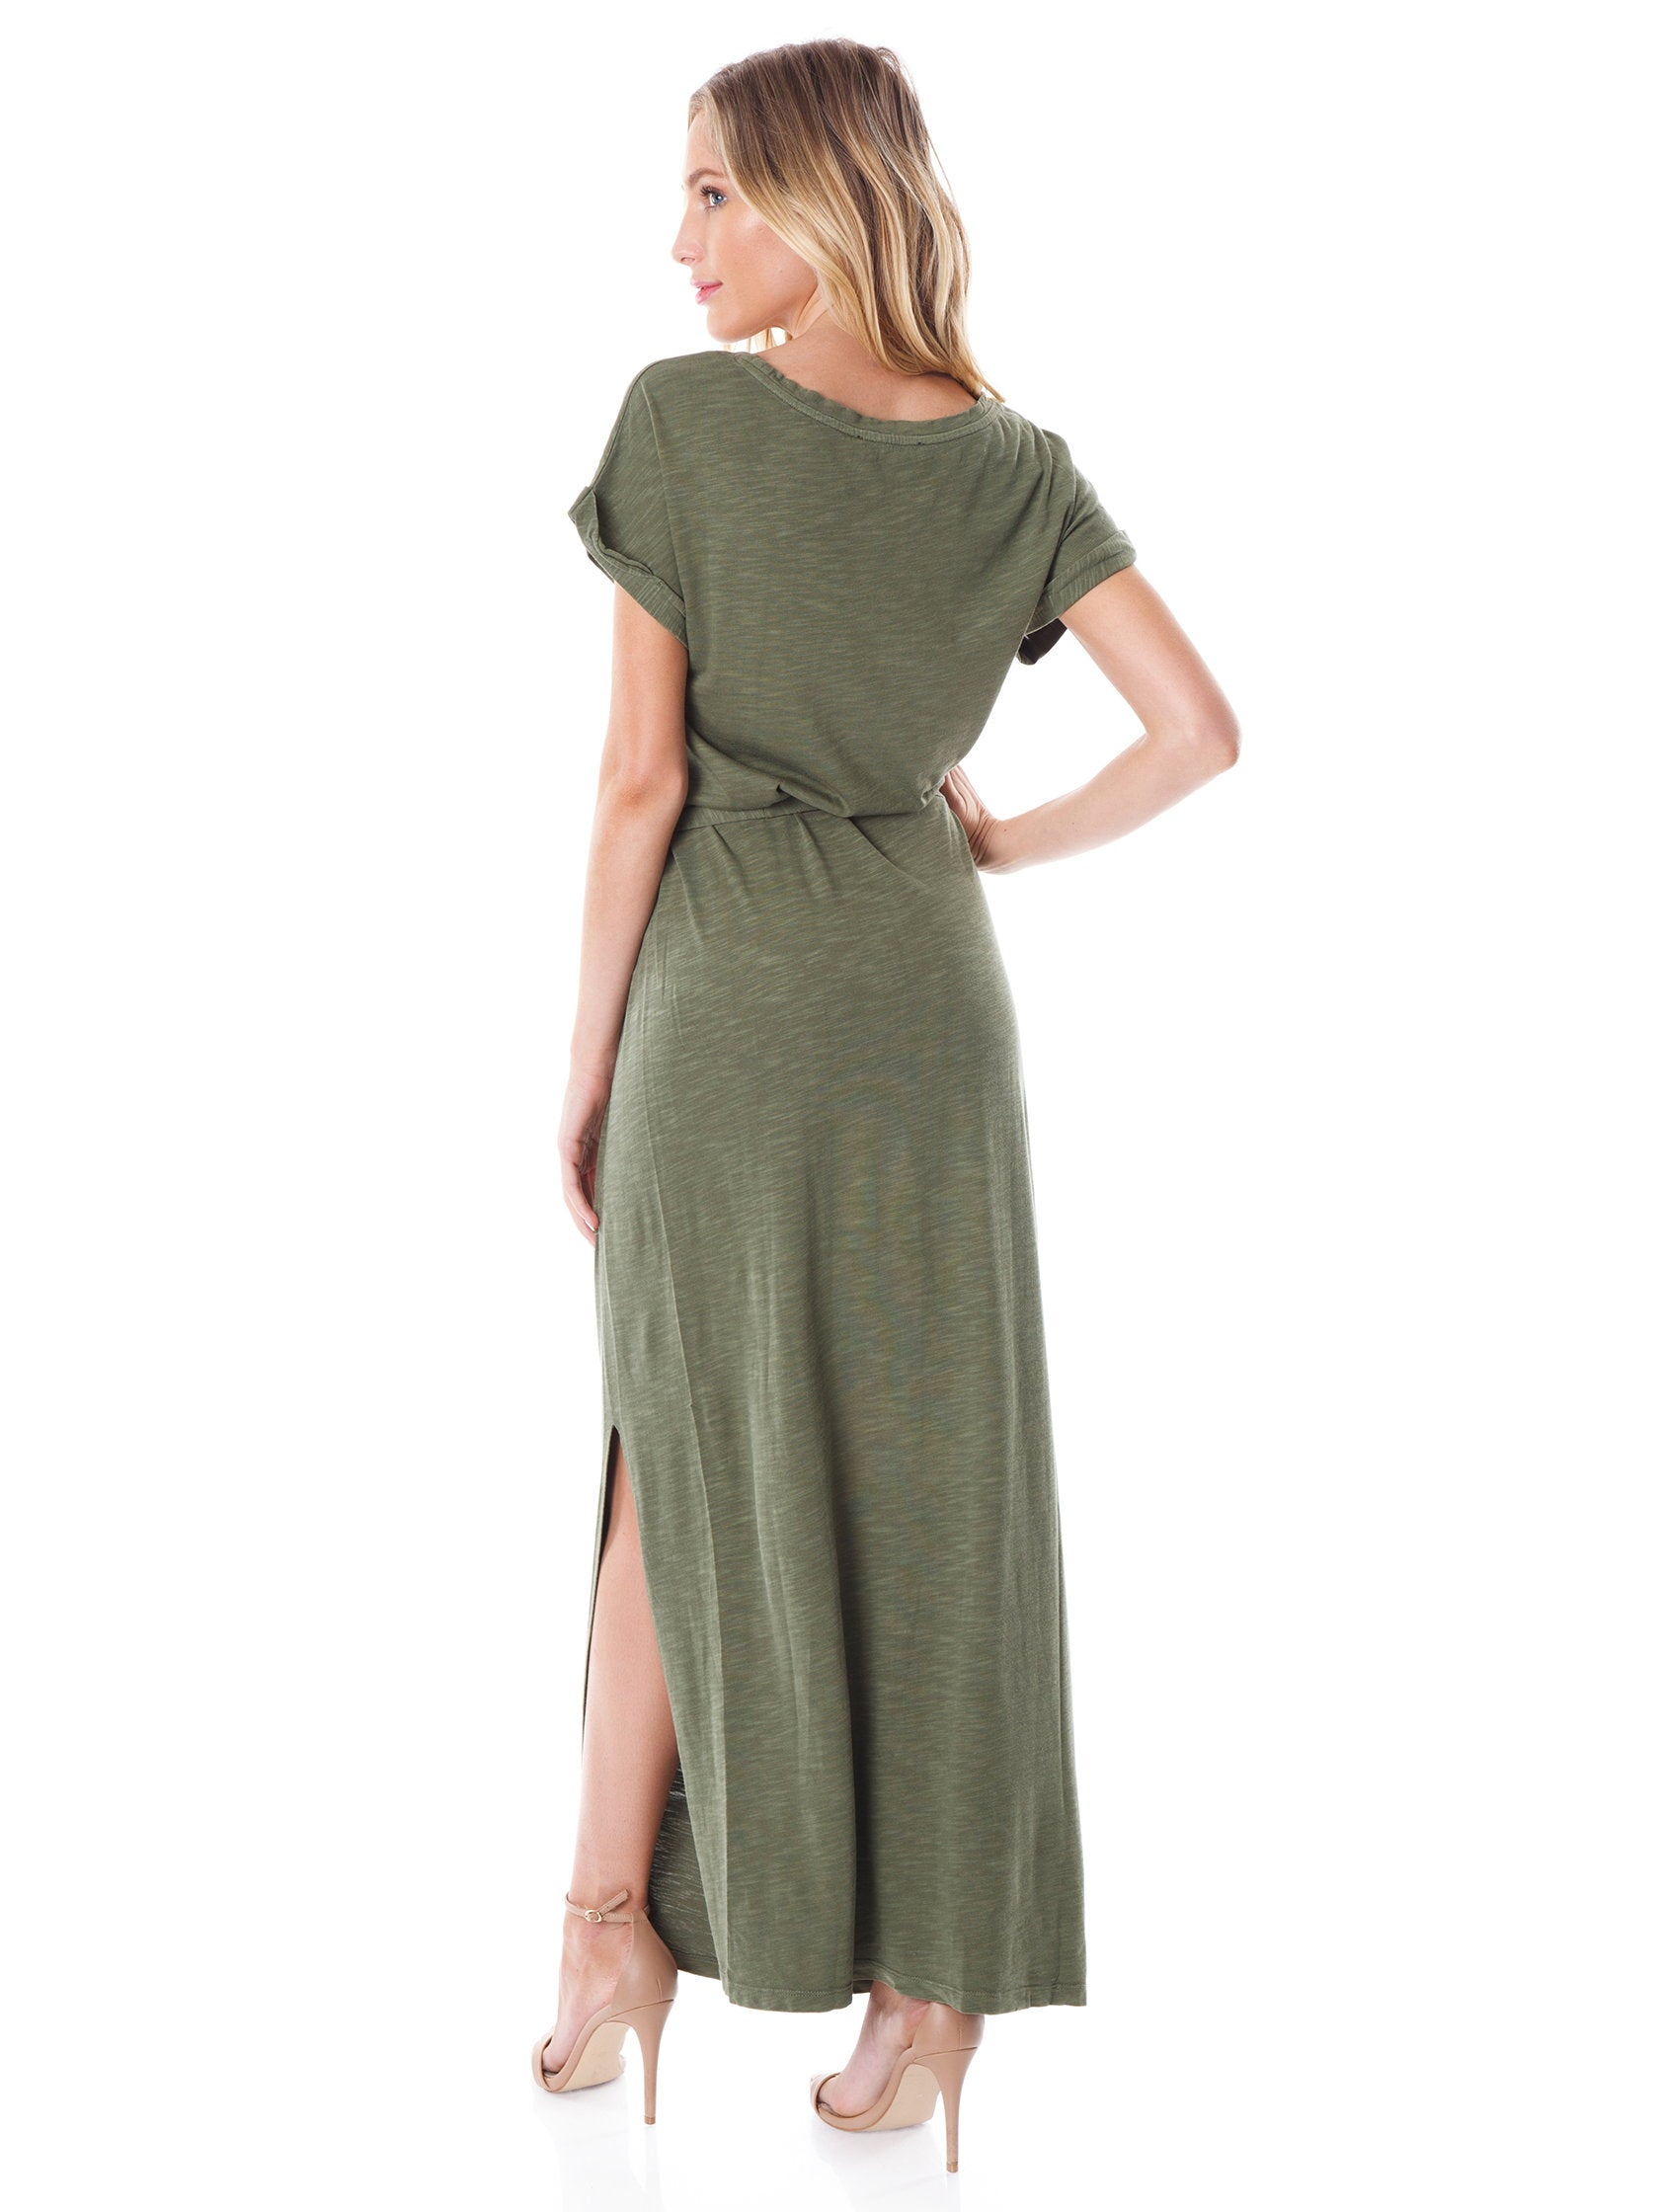 Women wearing a dress rental from SANCTUARY called Isle T-shirt Maxi Dress